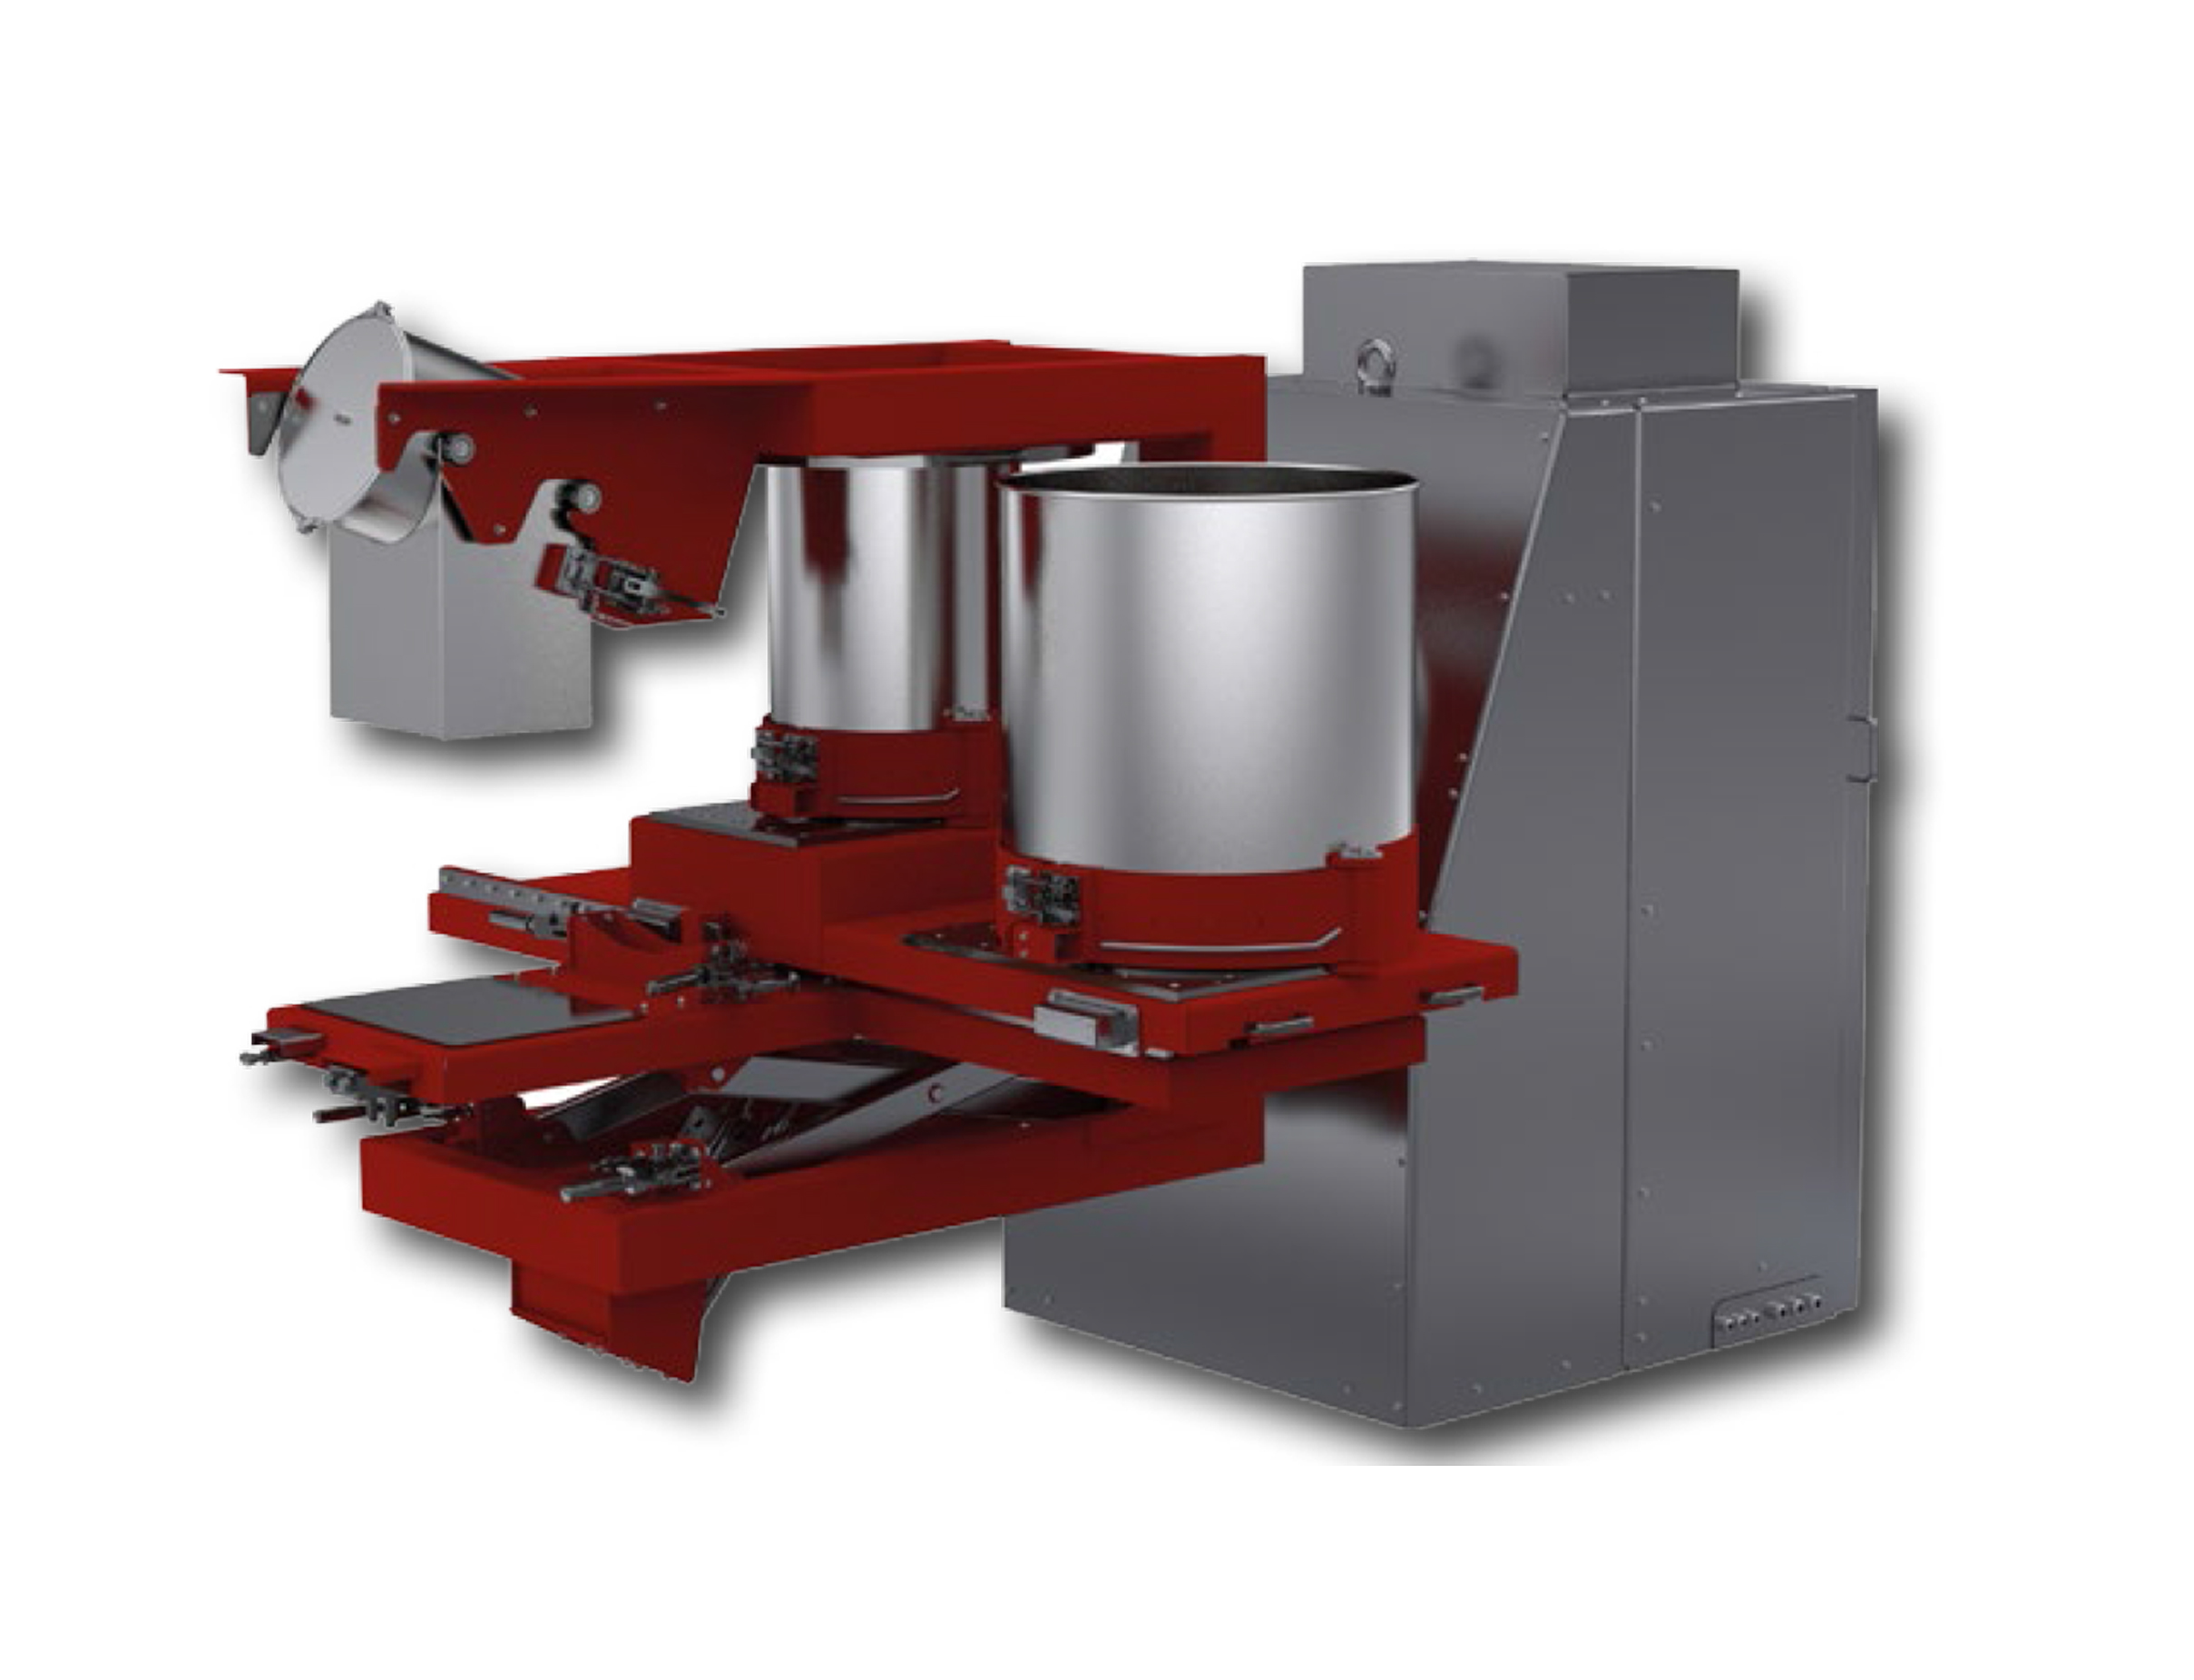 2D mixer with Muhr Spraying System